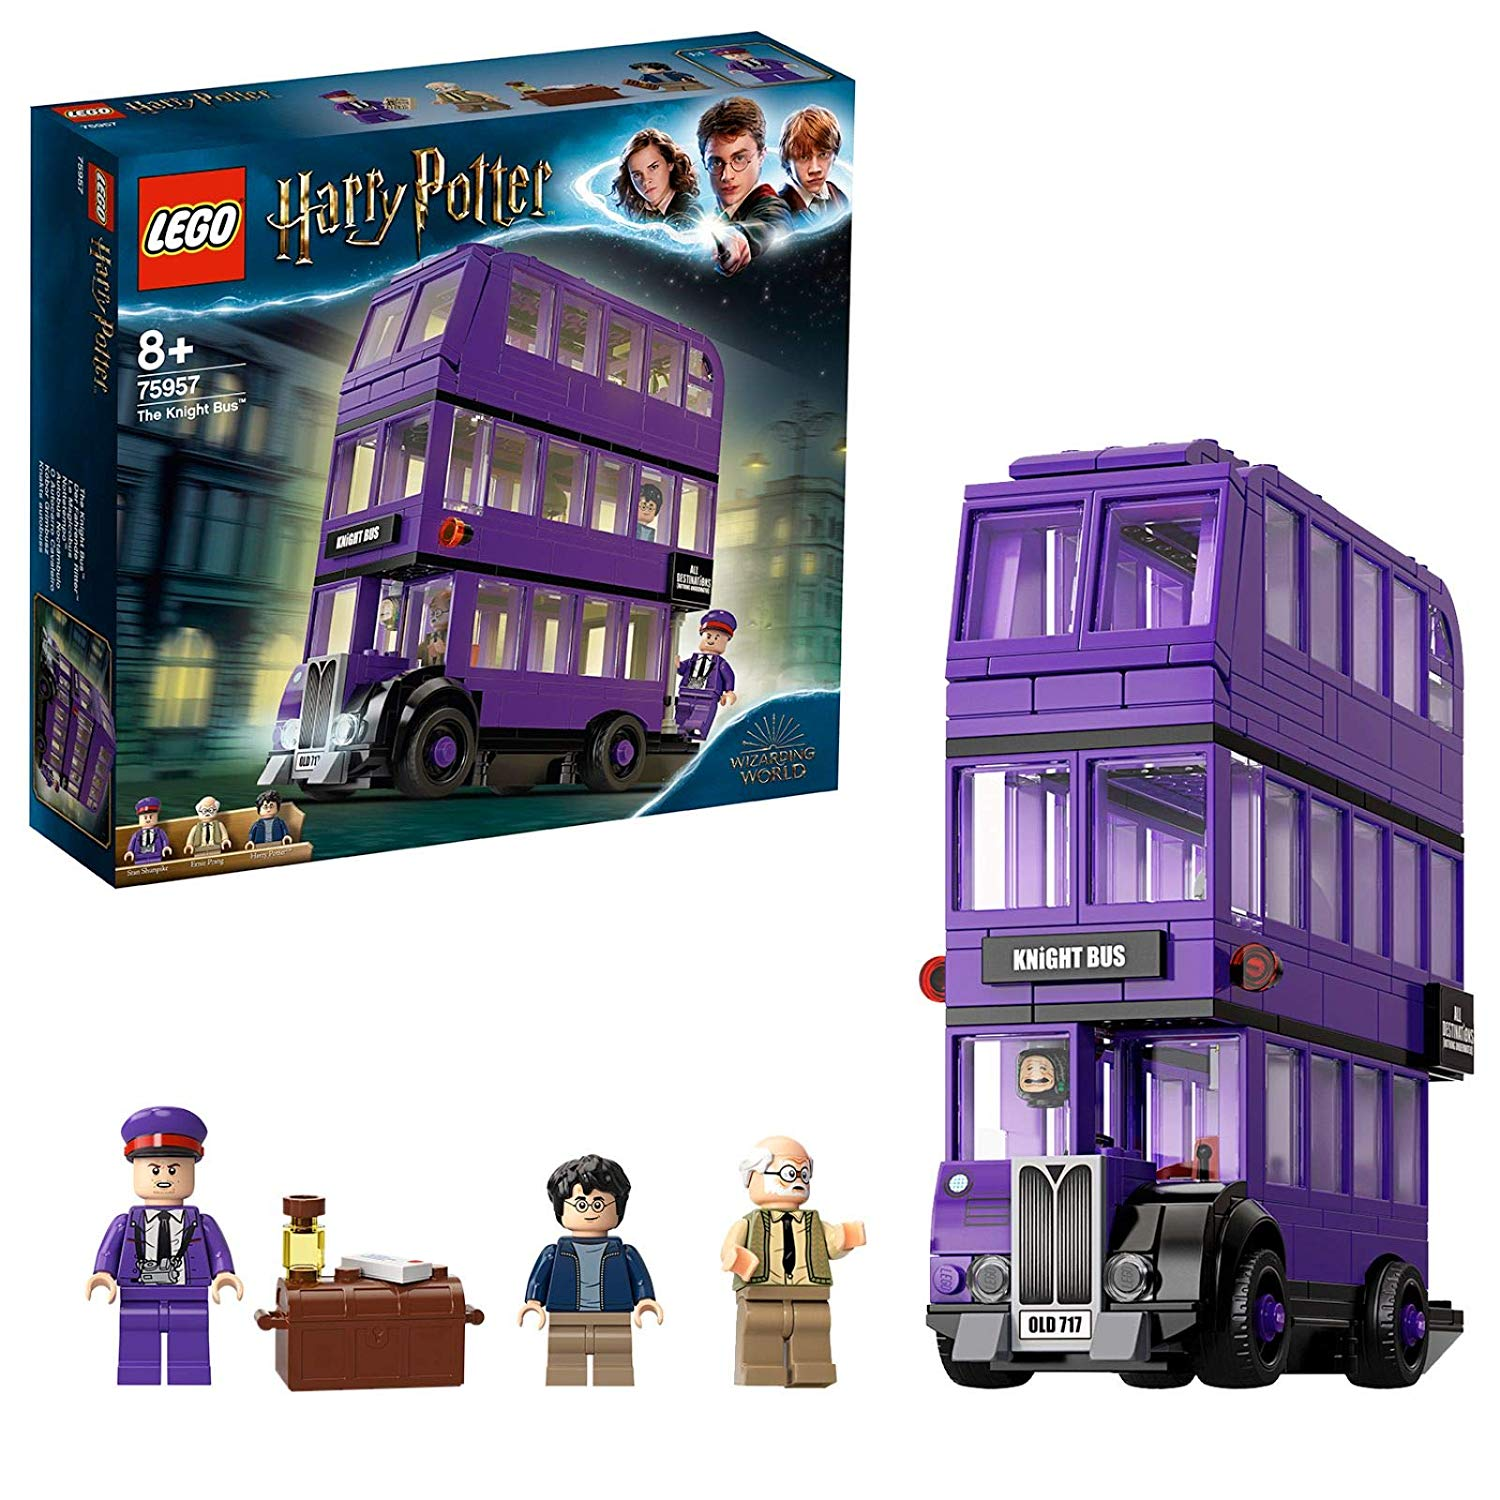 LEGO Harry Potter Knight Bus Toy